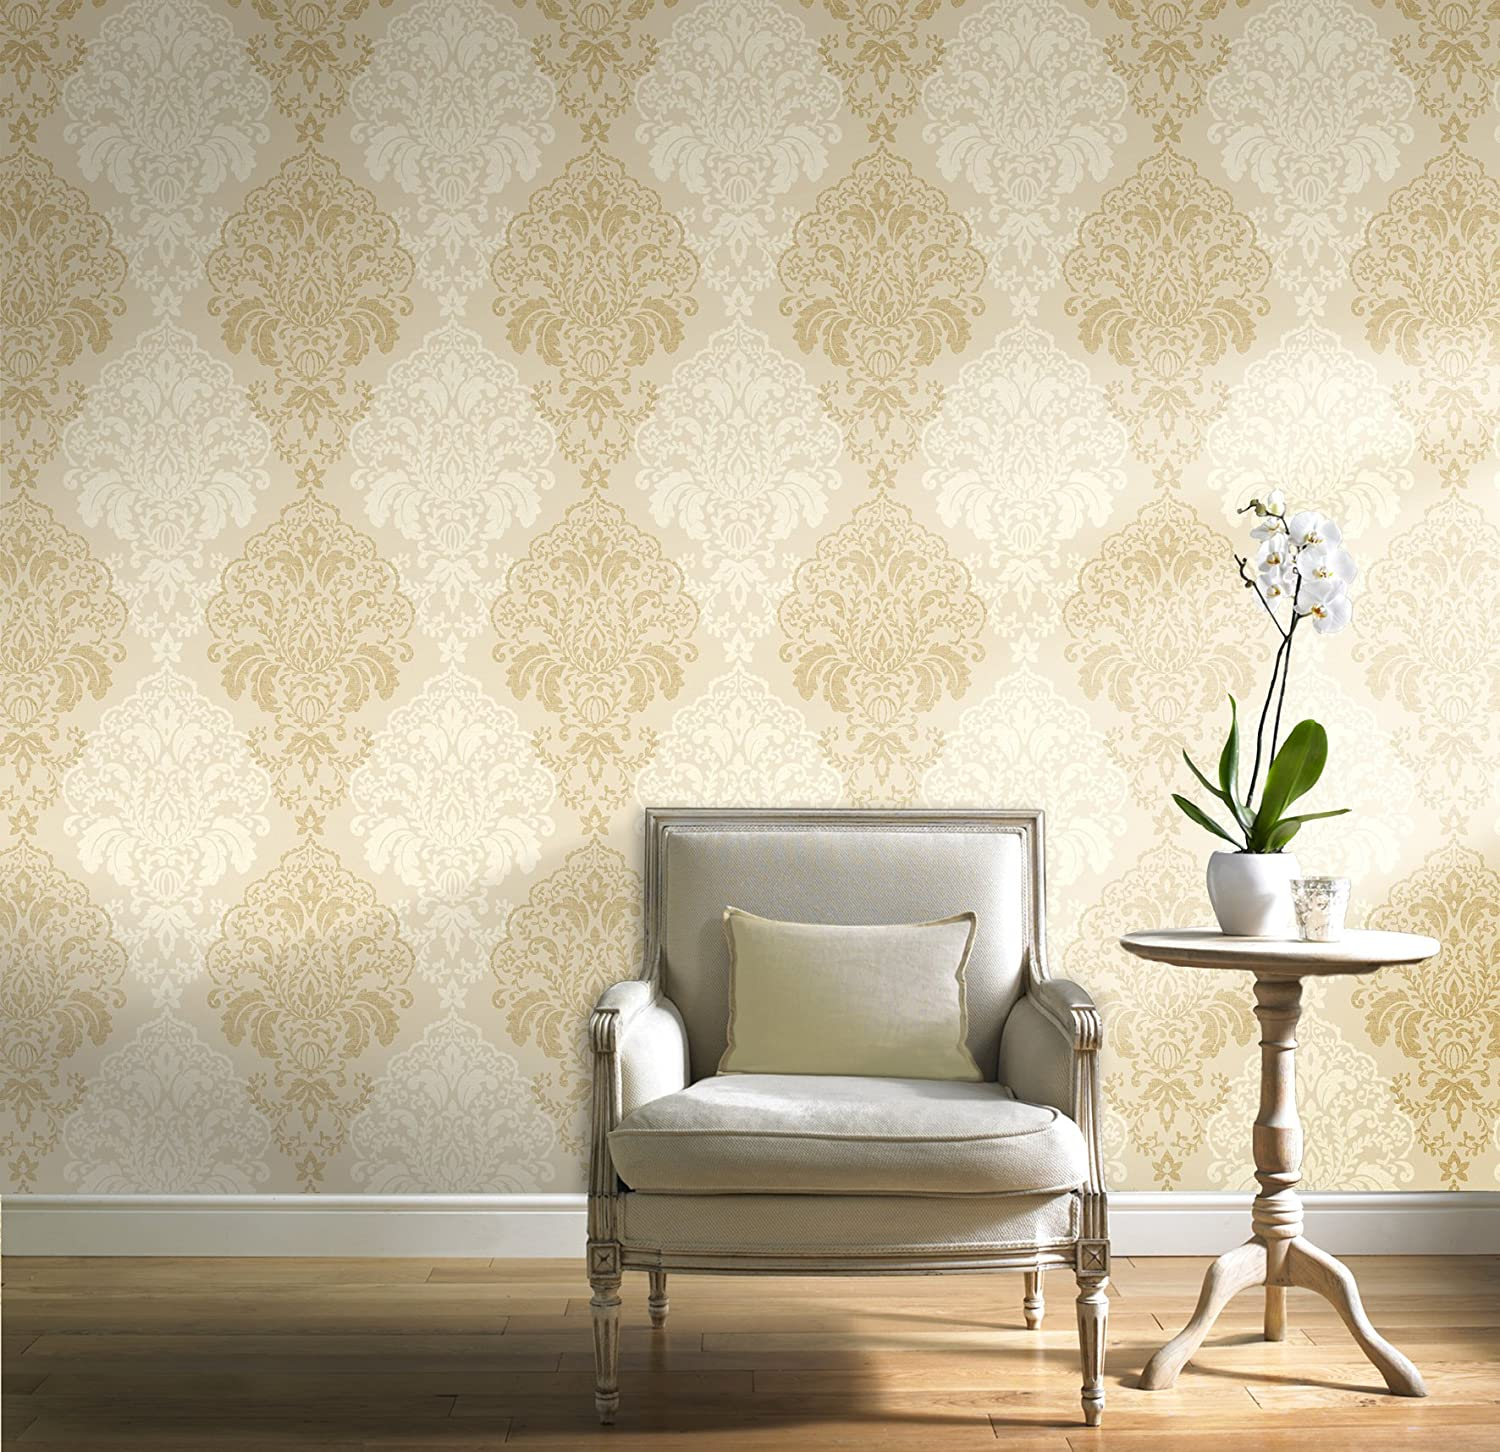 Glitter Damask Quality WallpaperVinyl Finish Gold Amazoncouk